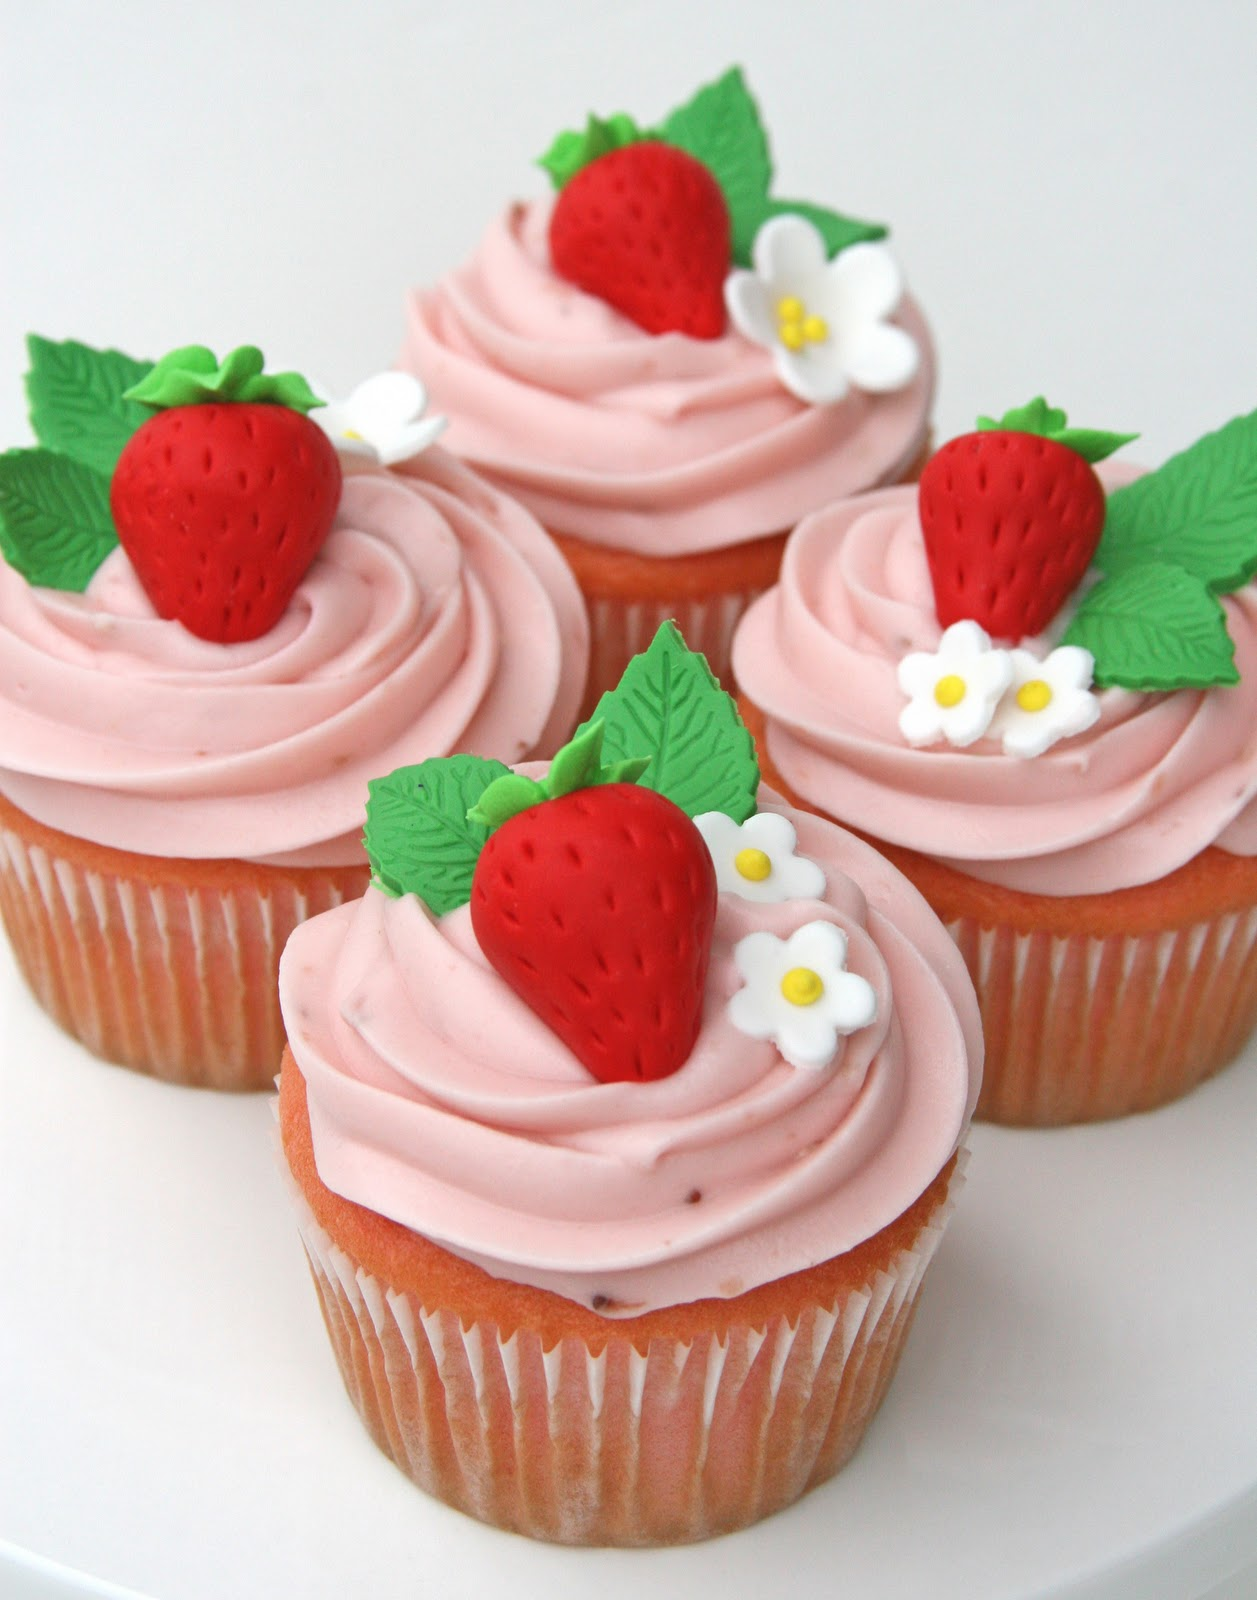 ... strawberry house from Glorious Treats. Her strawberry cupcakes are